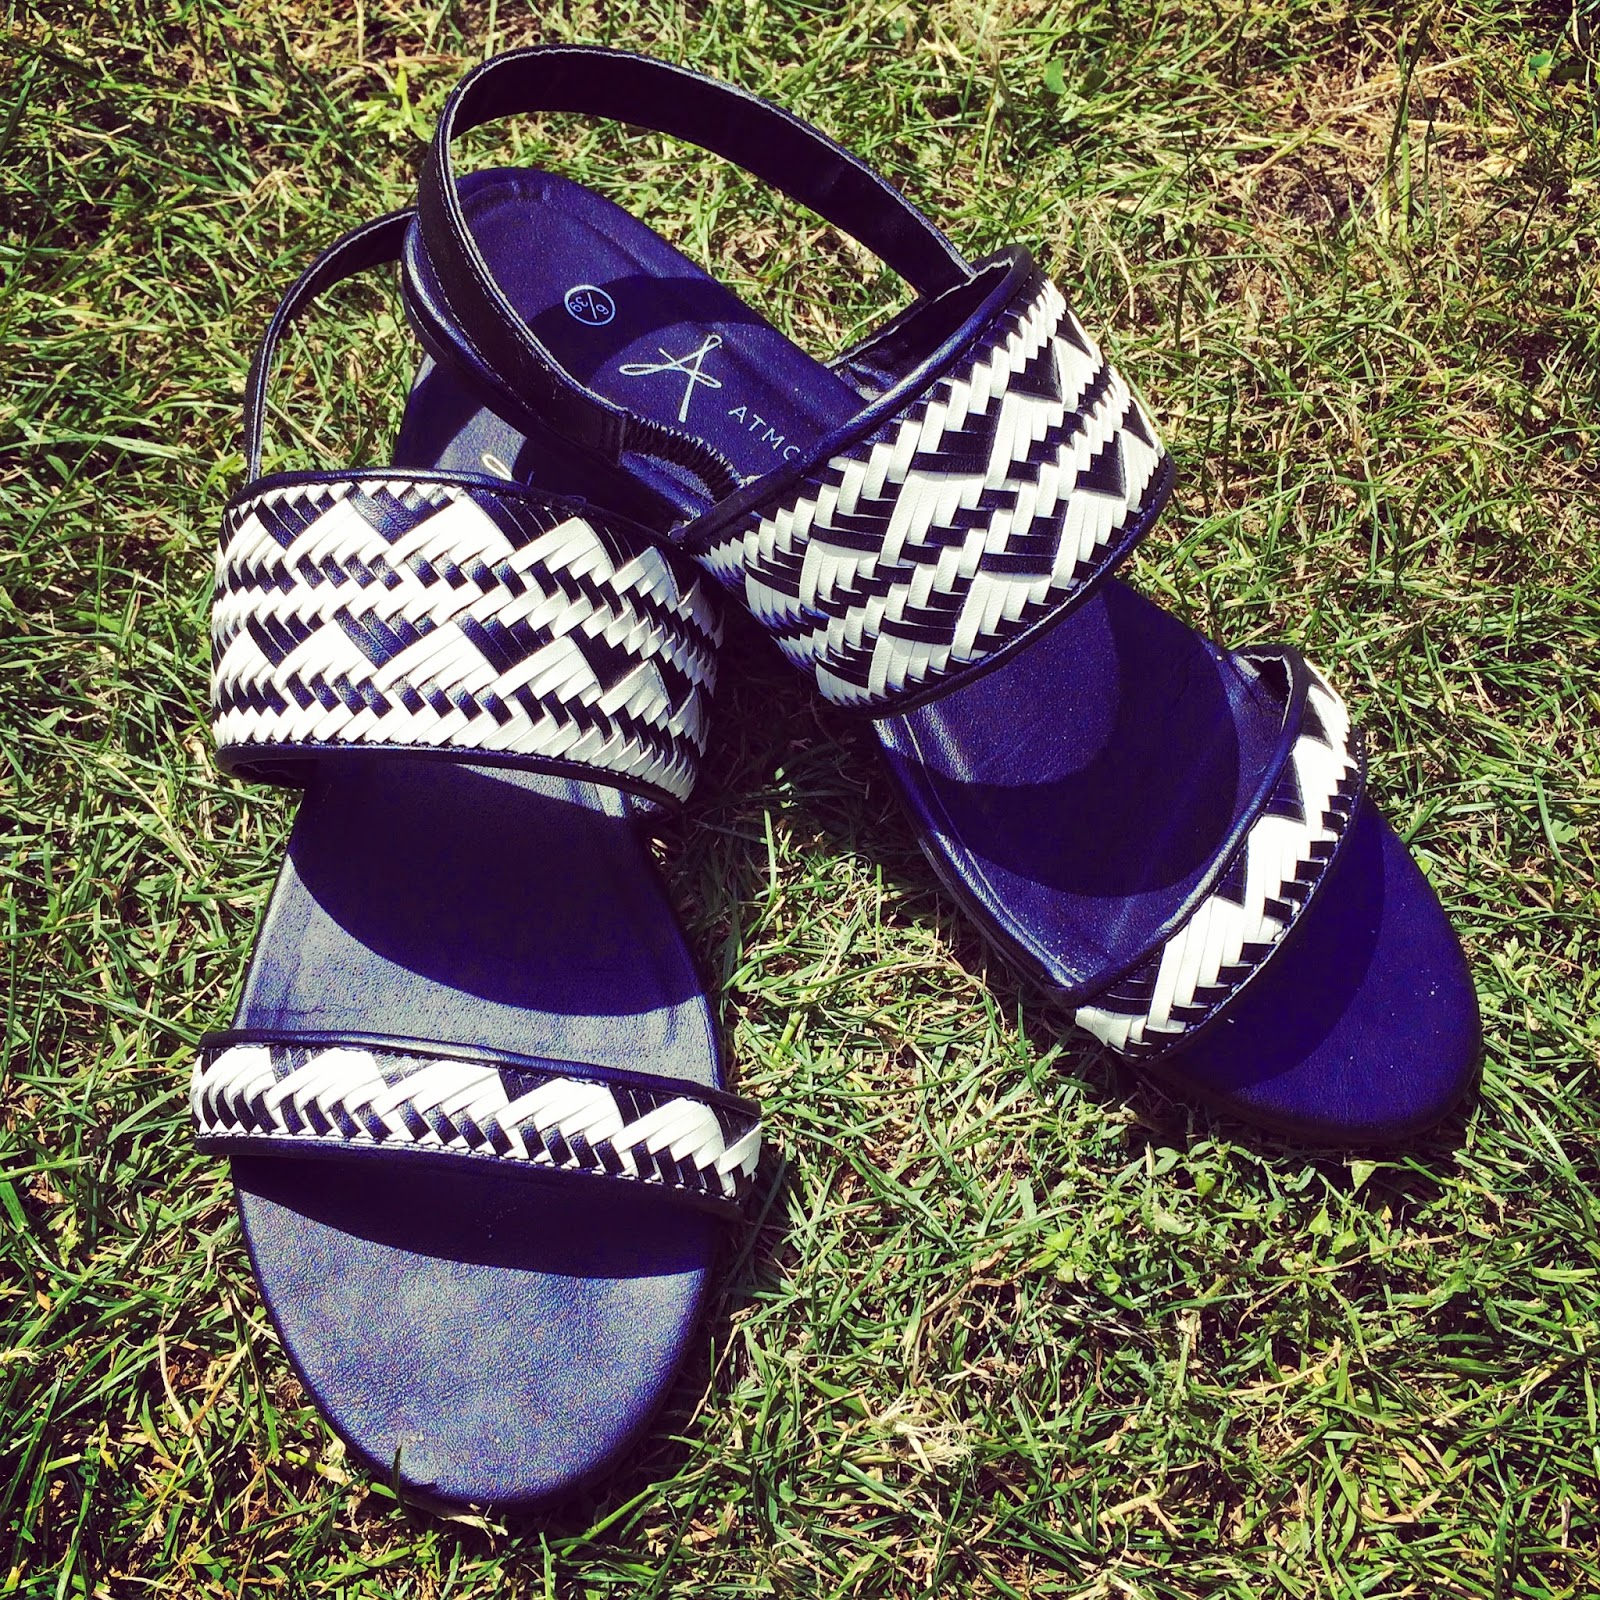 Primark Monocrome Summer Sandals Review 2